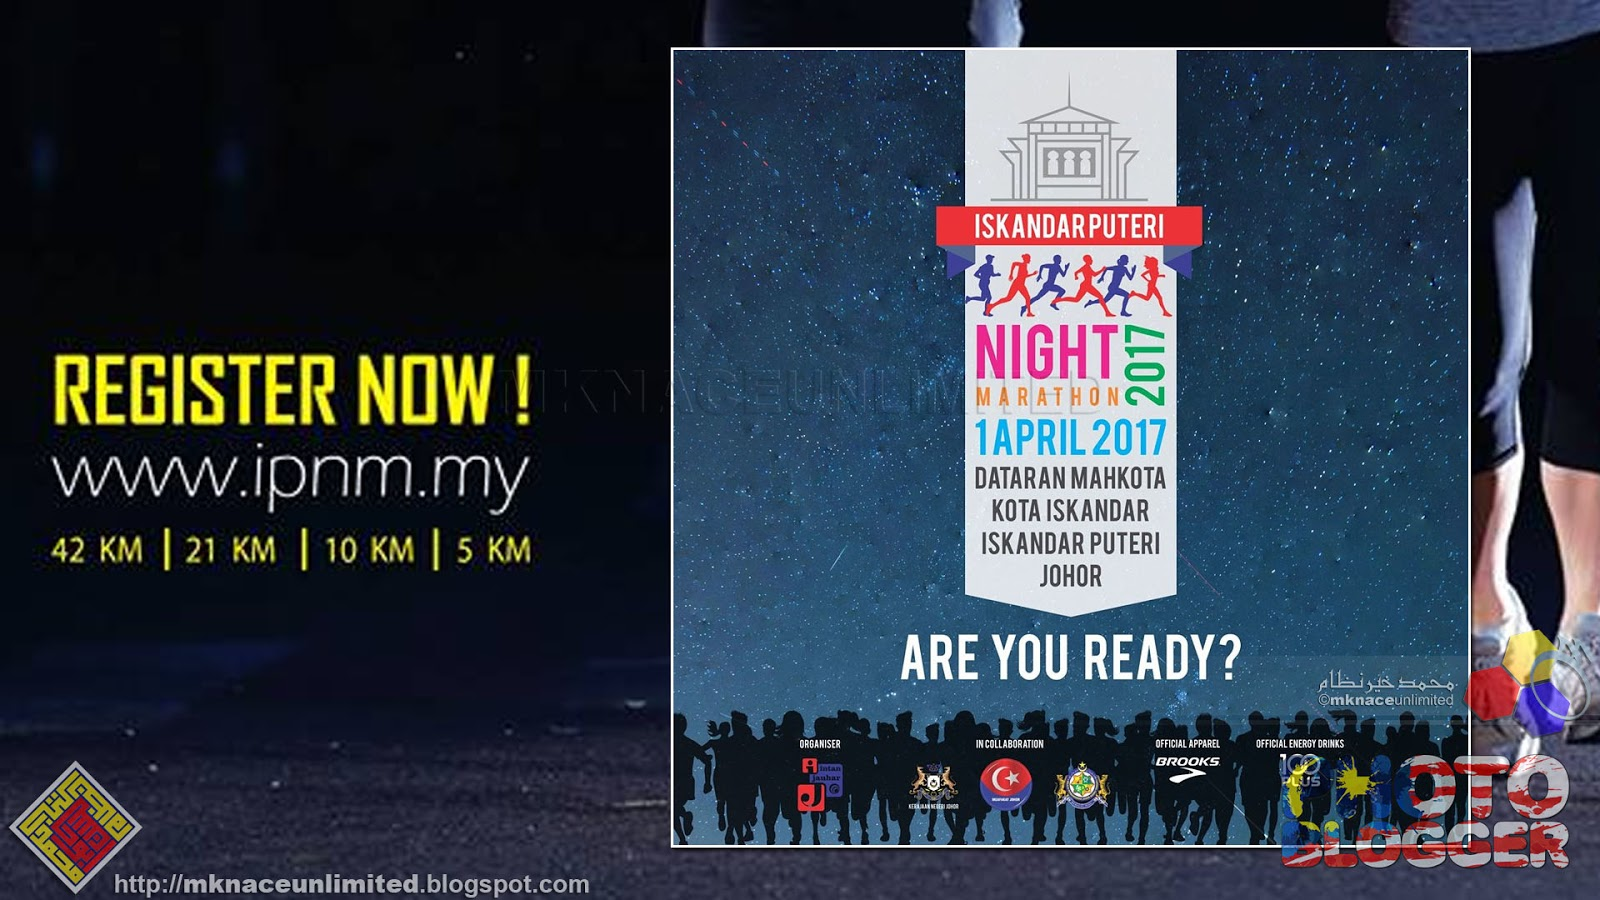 ISKANDAR PUTERI NIGHT MARATHON 2017 is an ANNUAL international marathon  event designated to promote Iskandar Puteri and the State of Johor to the  world. 5c28a3266e